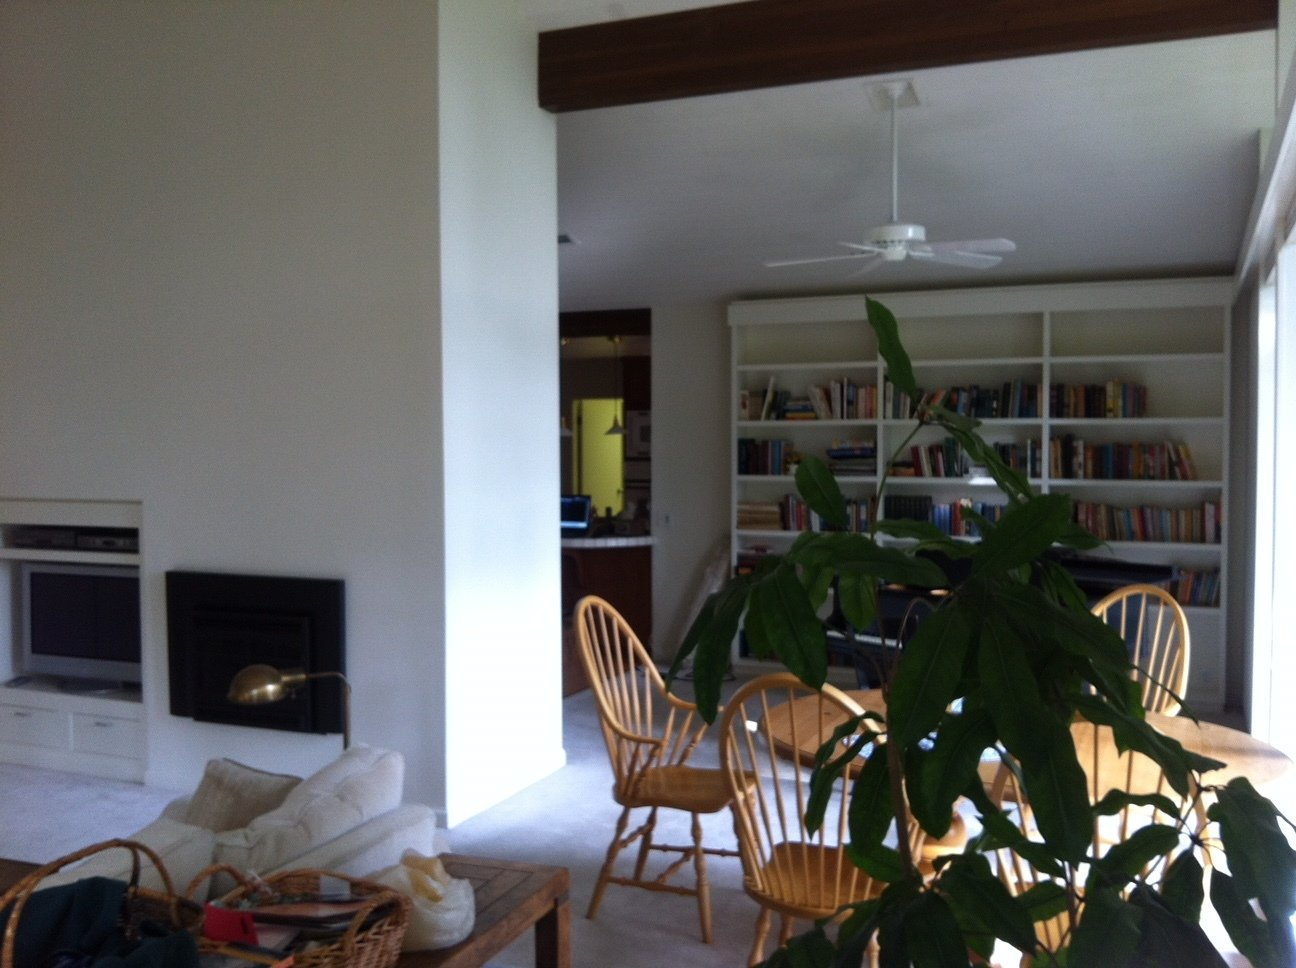 A view of the dining room area from the living room before the renovations. Drywall covers the fireplace and a built-in bookcase is at the rear.